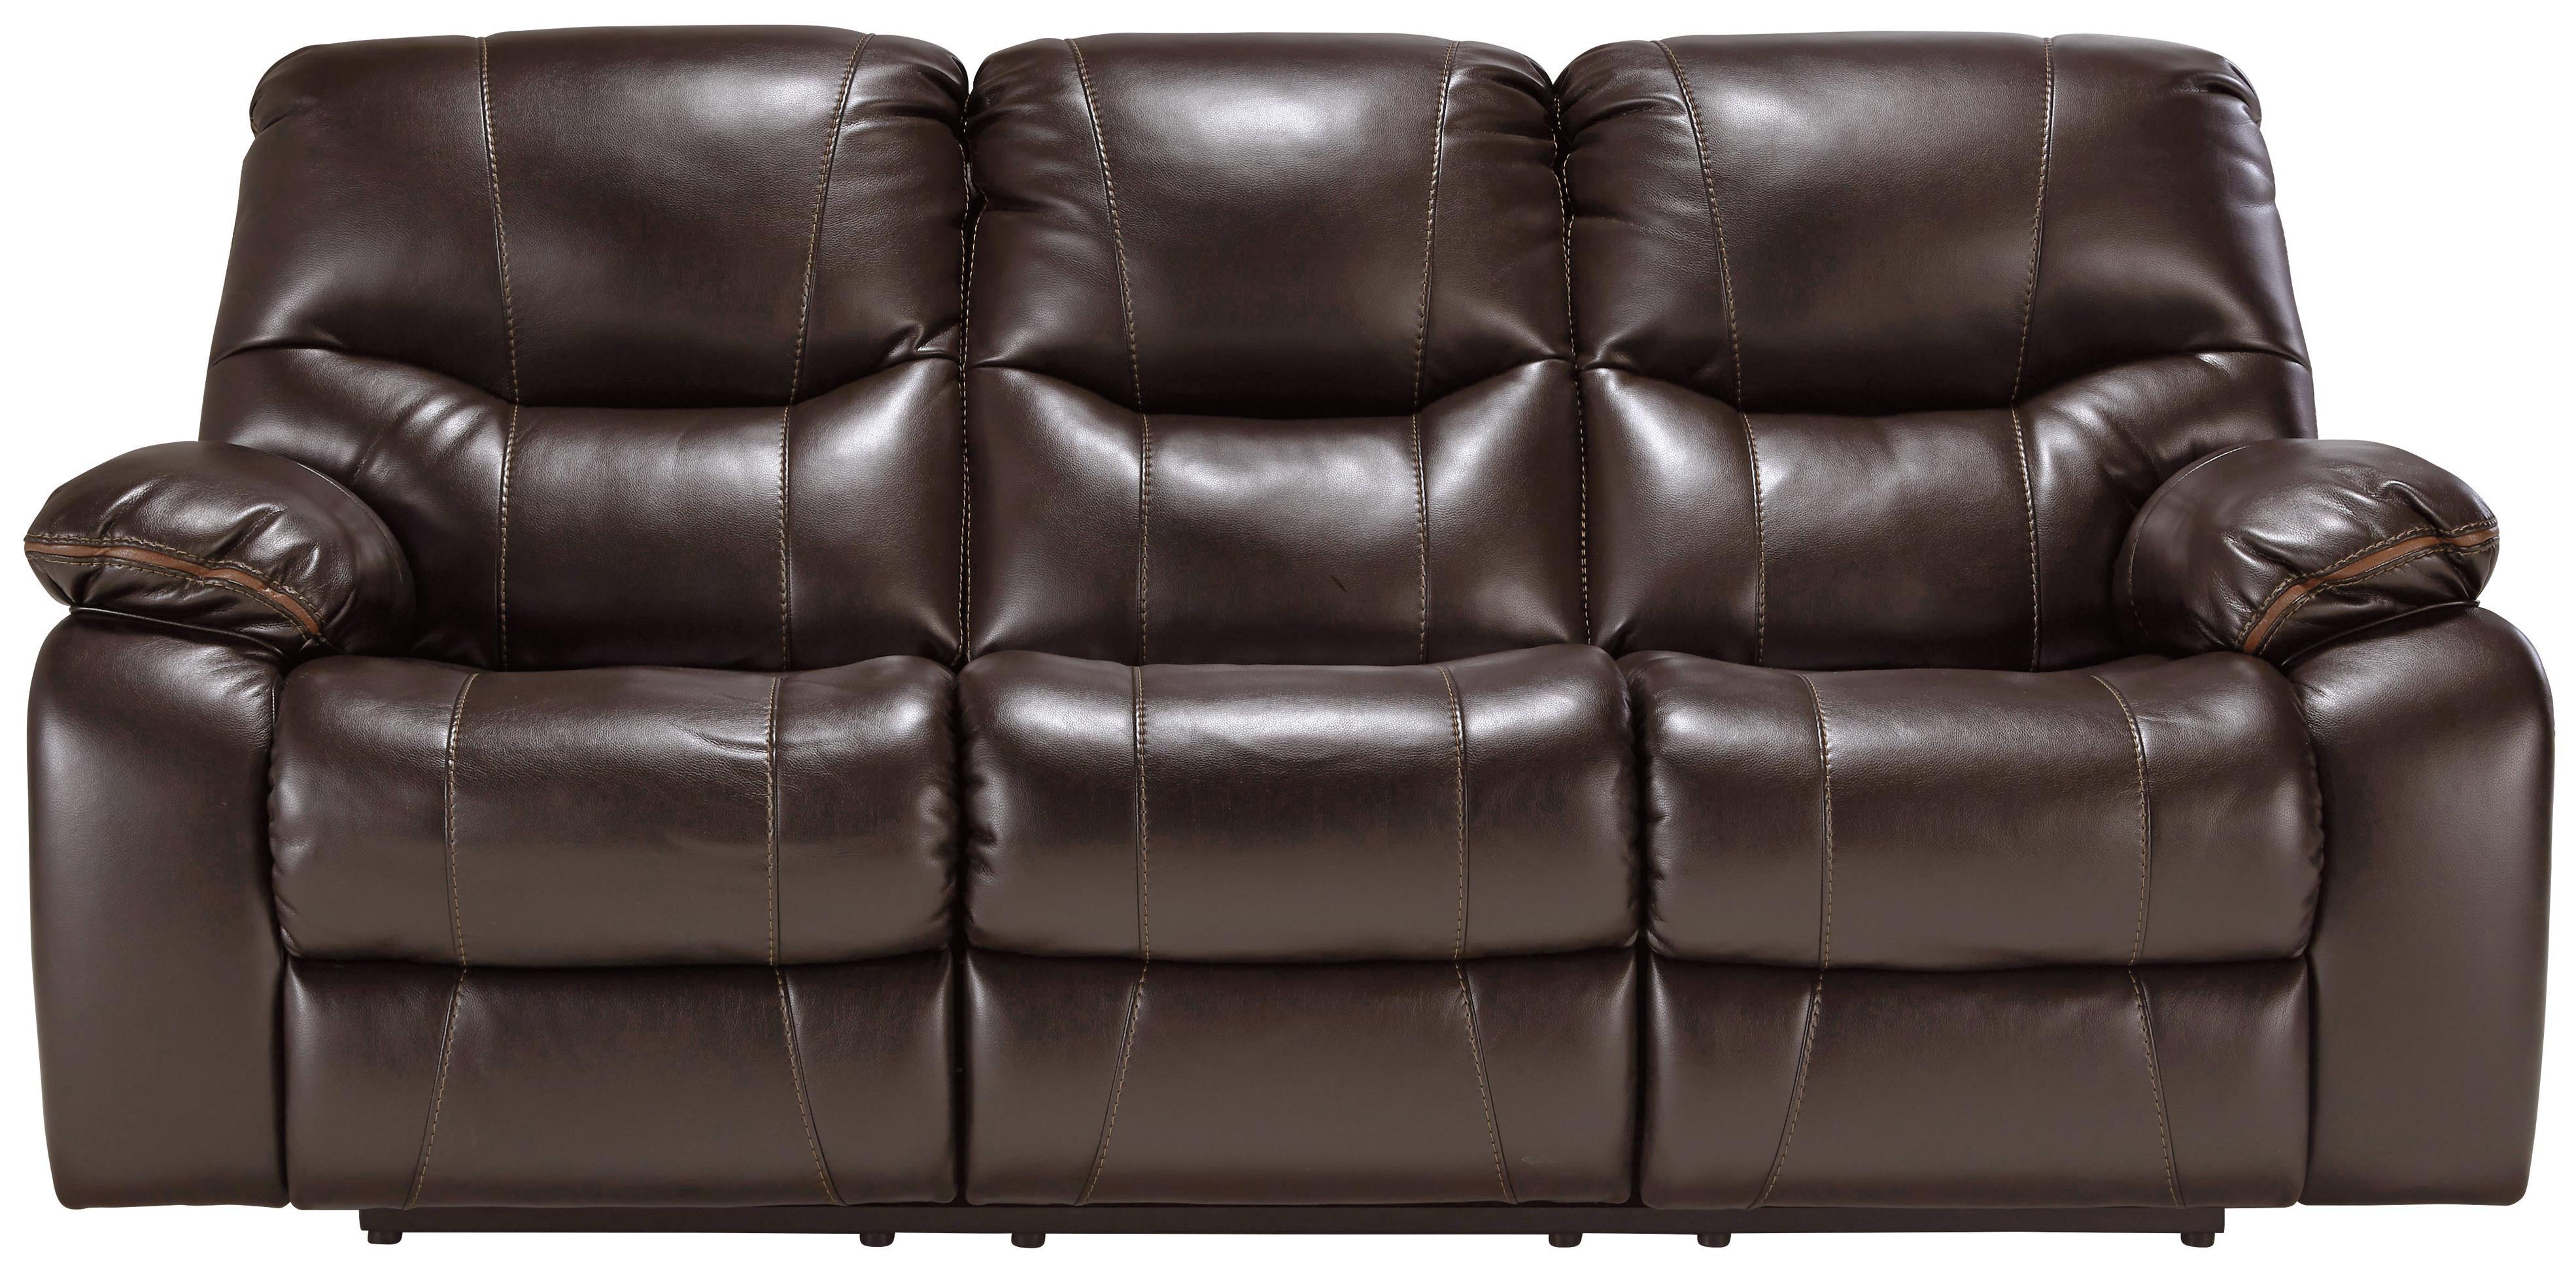 Signature Design by Ashley Pranas Reclining Power Sofa - Item Number: 4790087